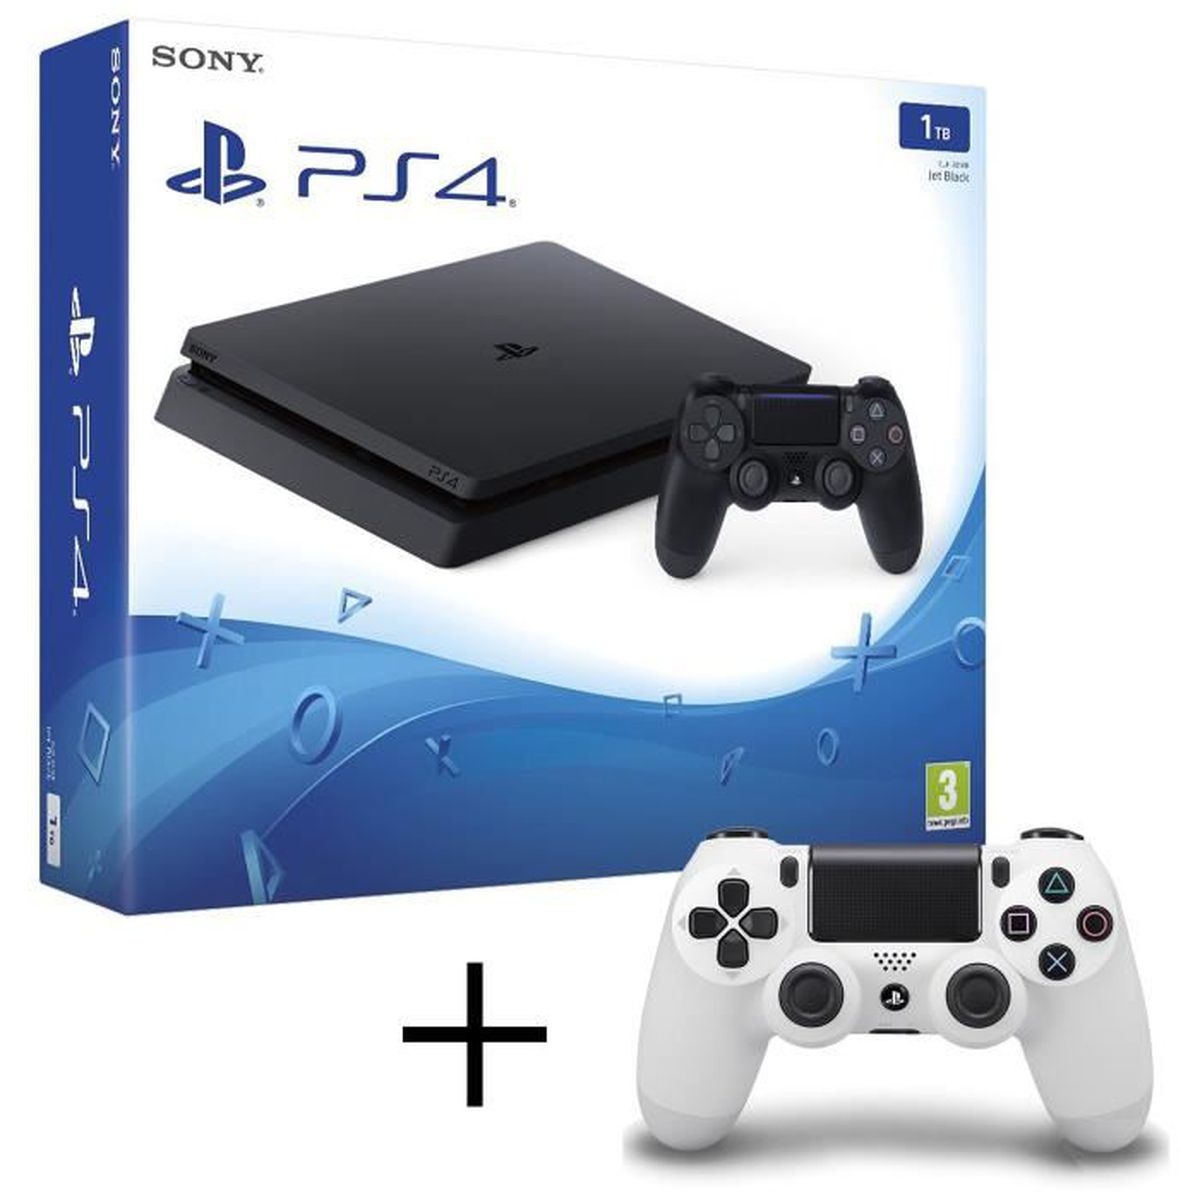 CONSOLE PS4 PS4 Slim 1to + playstation 4 manette Dualshock 4 b